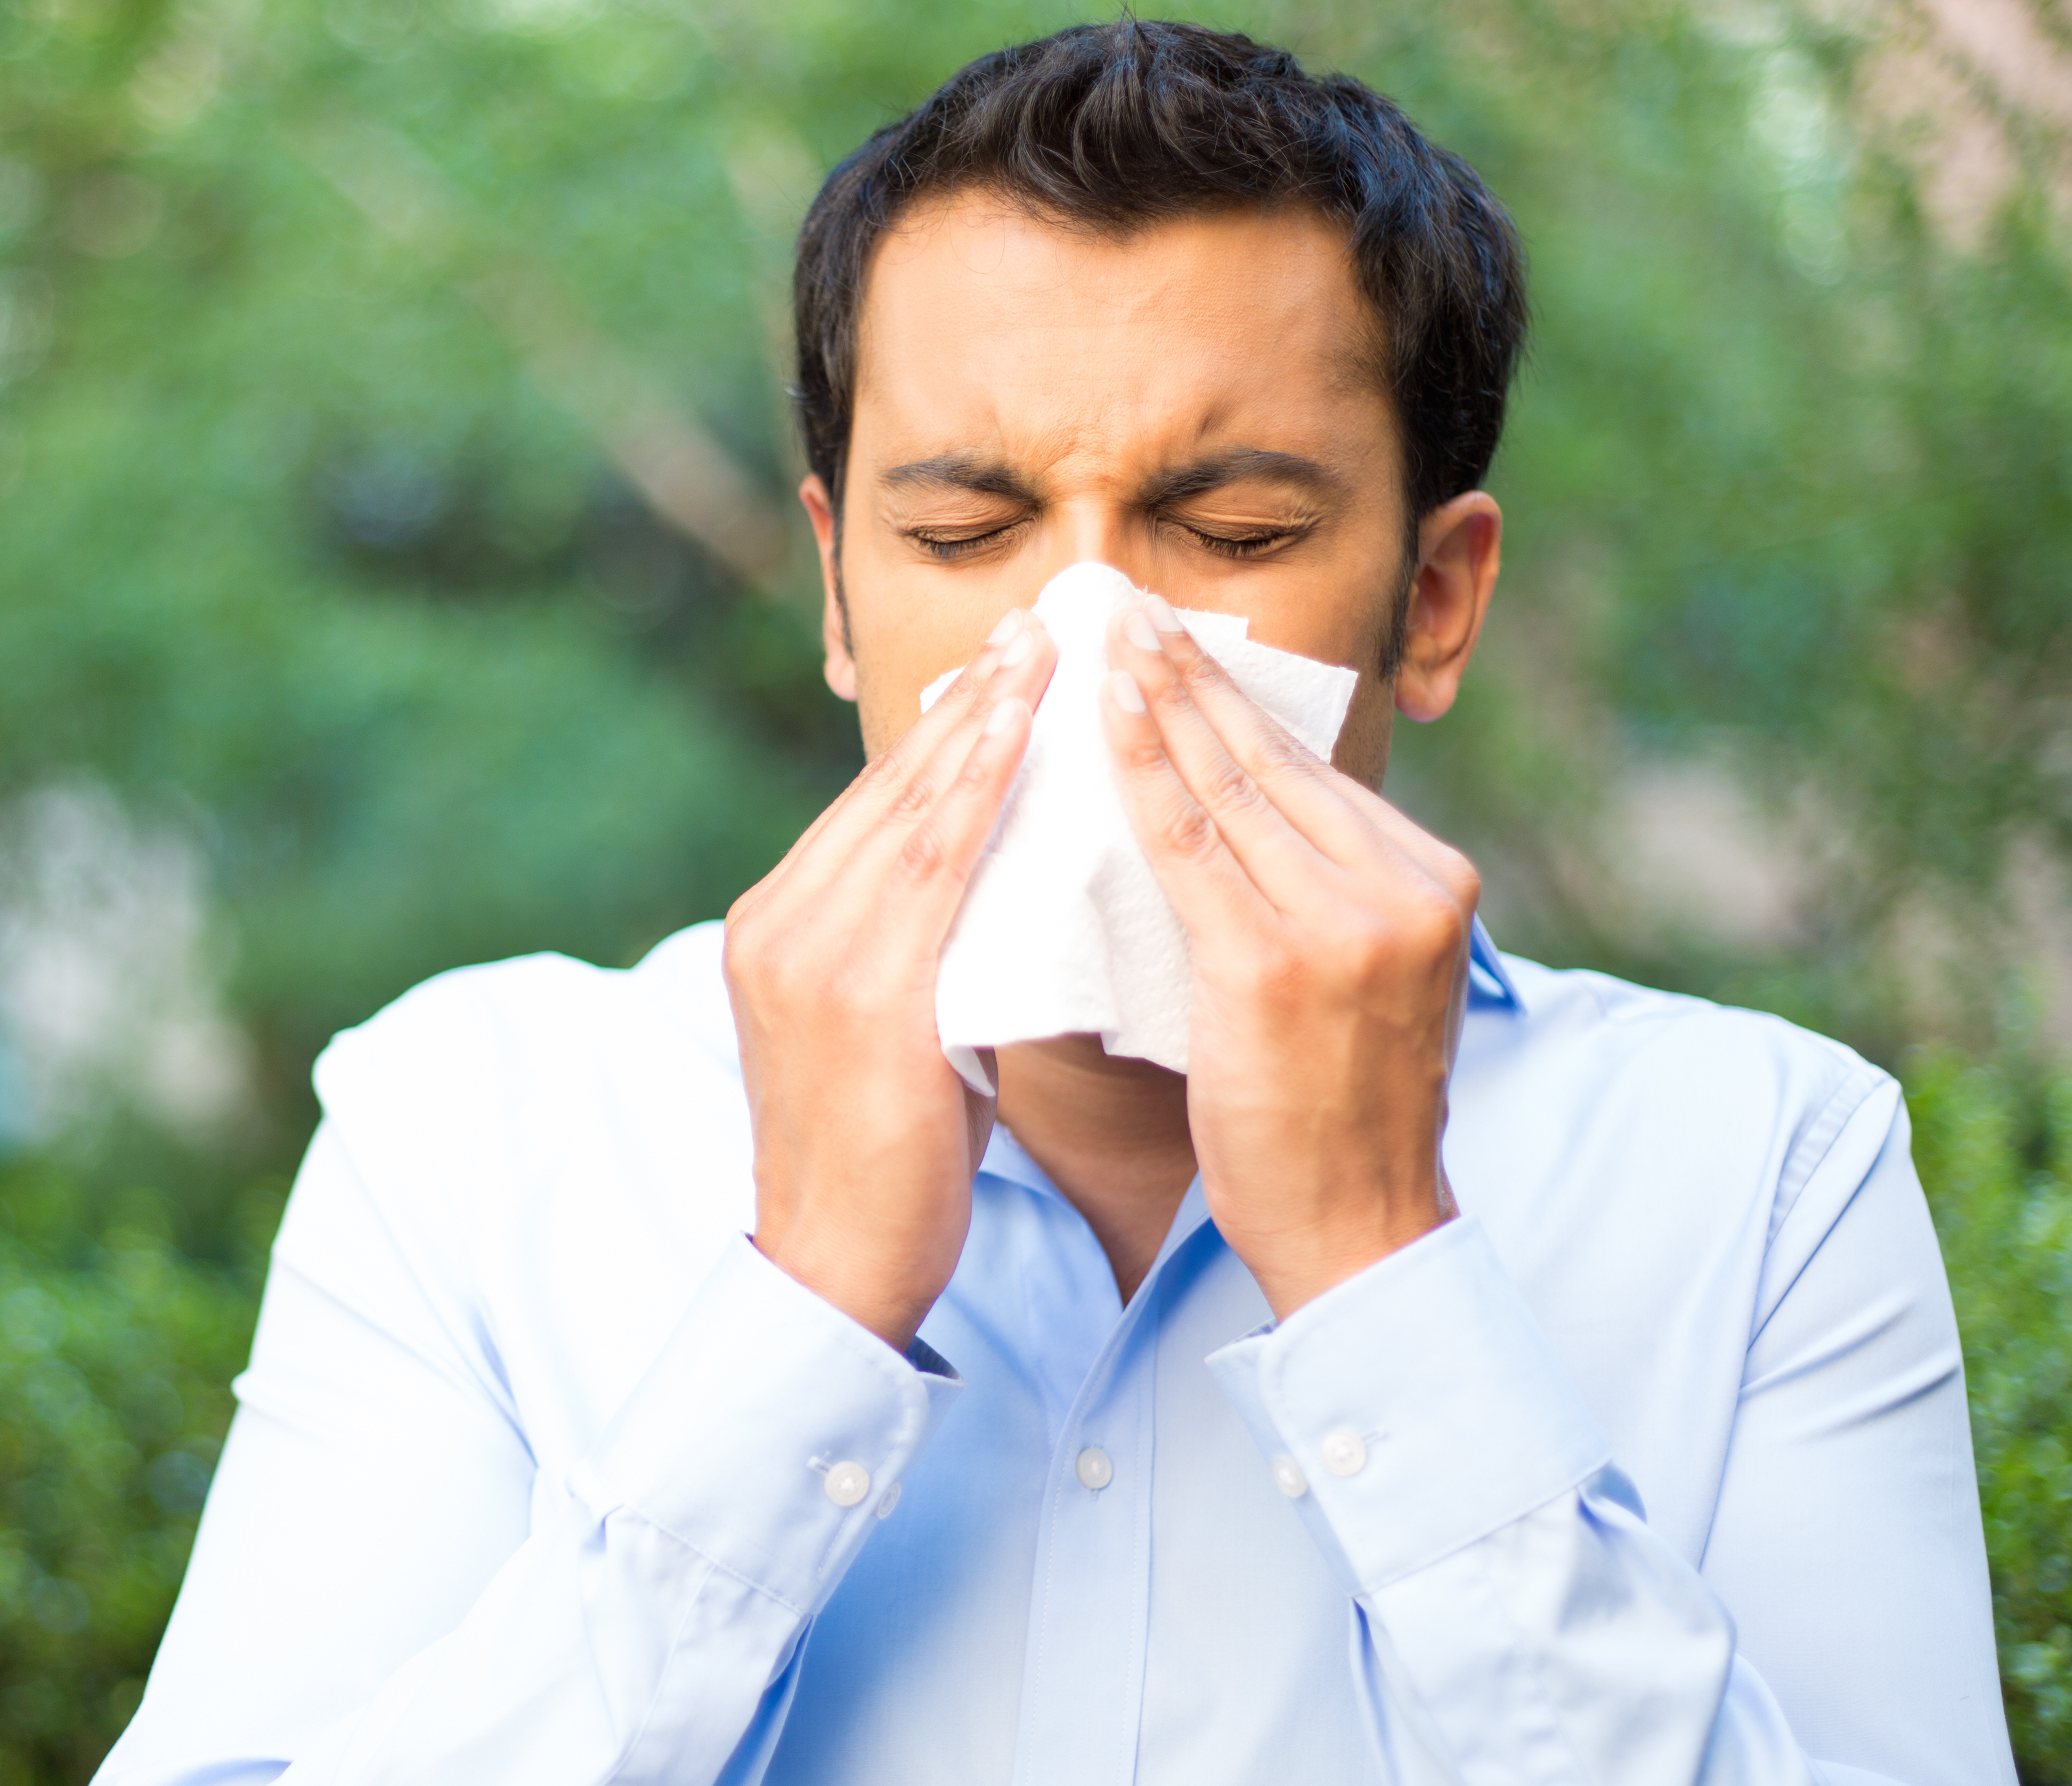 Man dealing with seasonal allergies